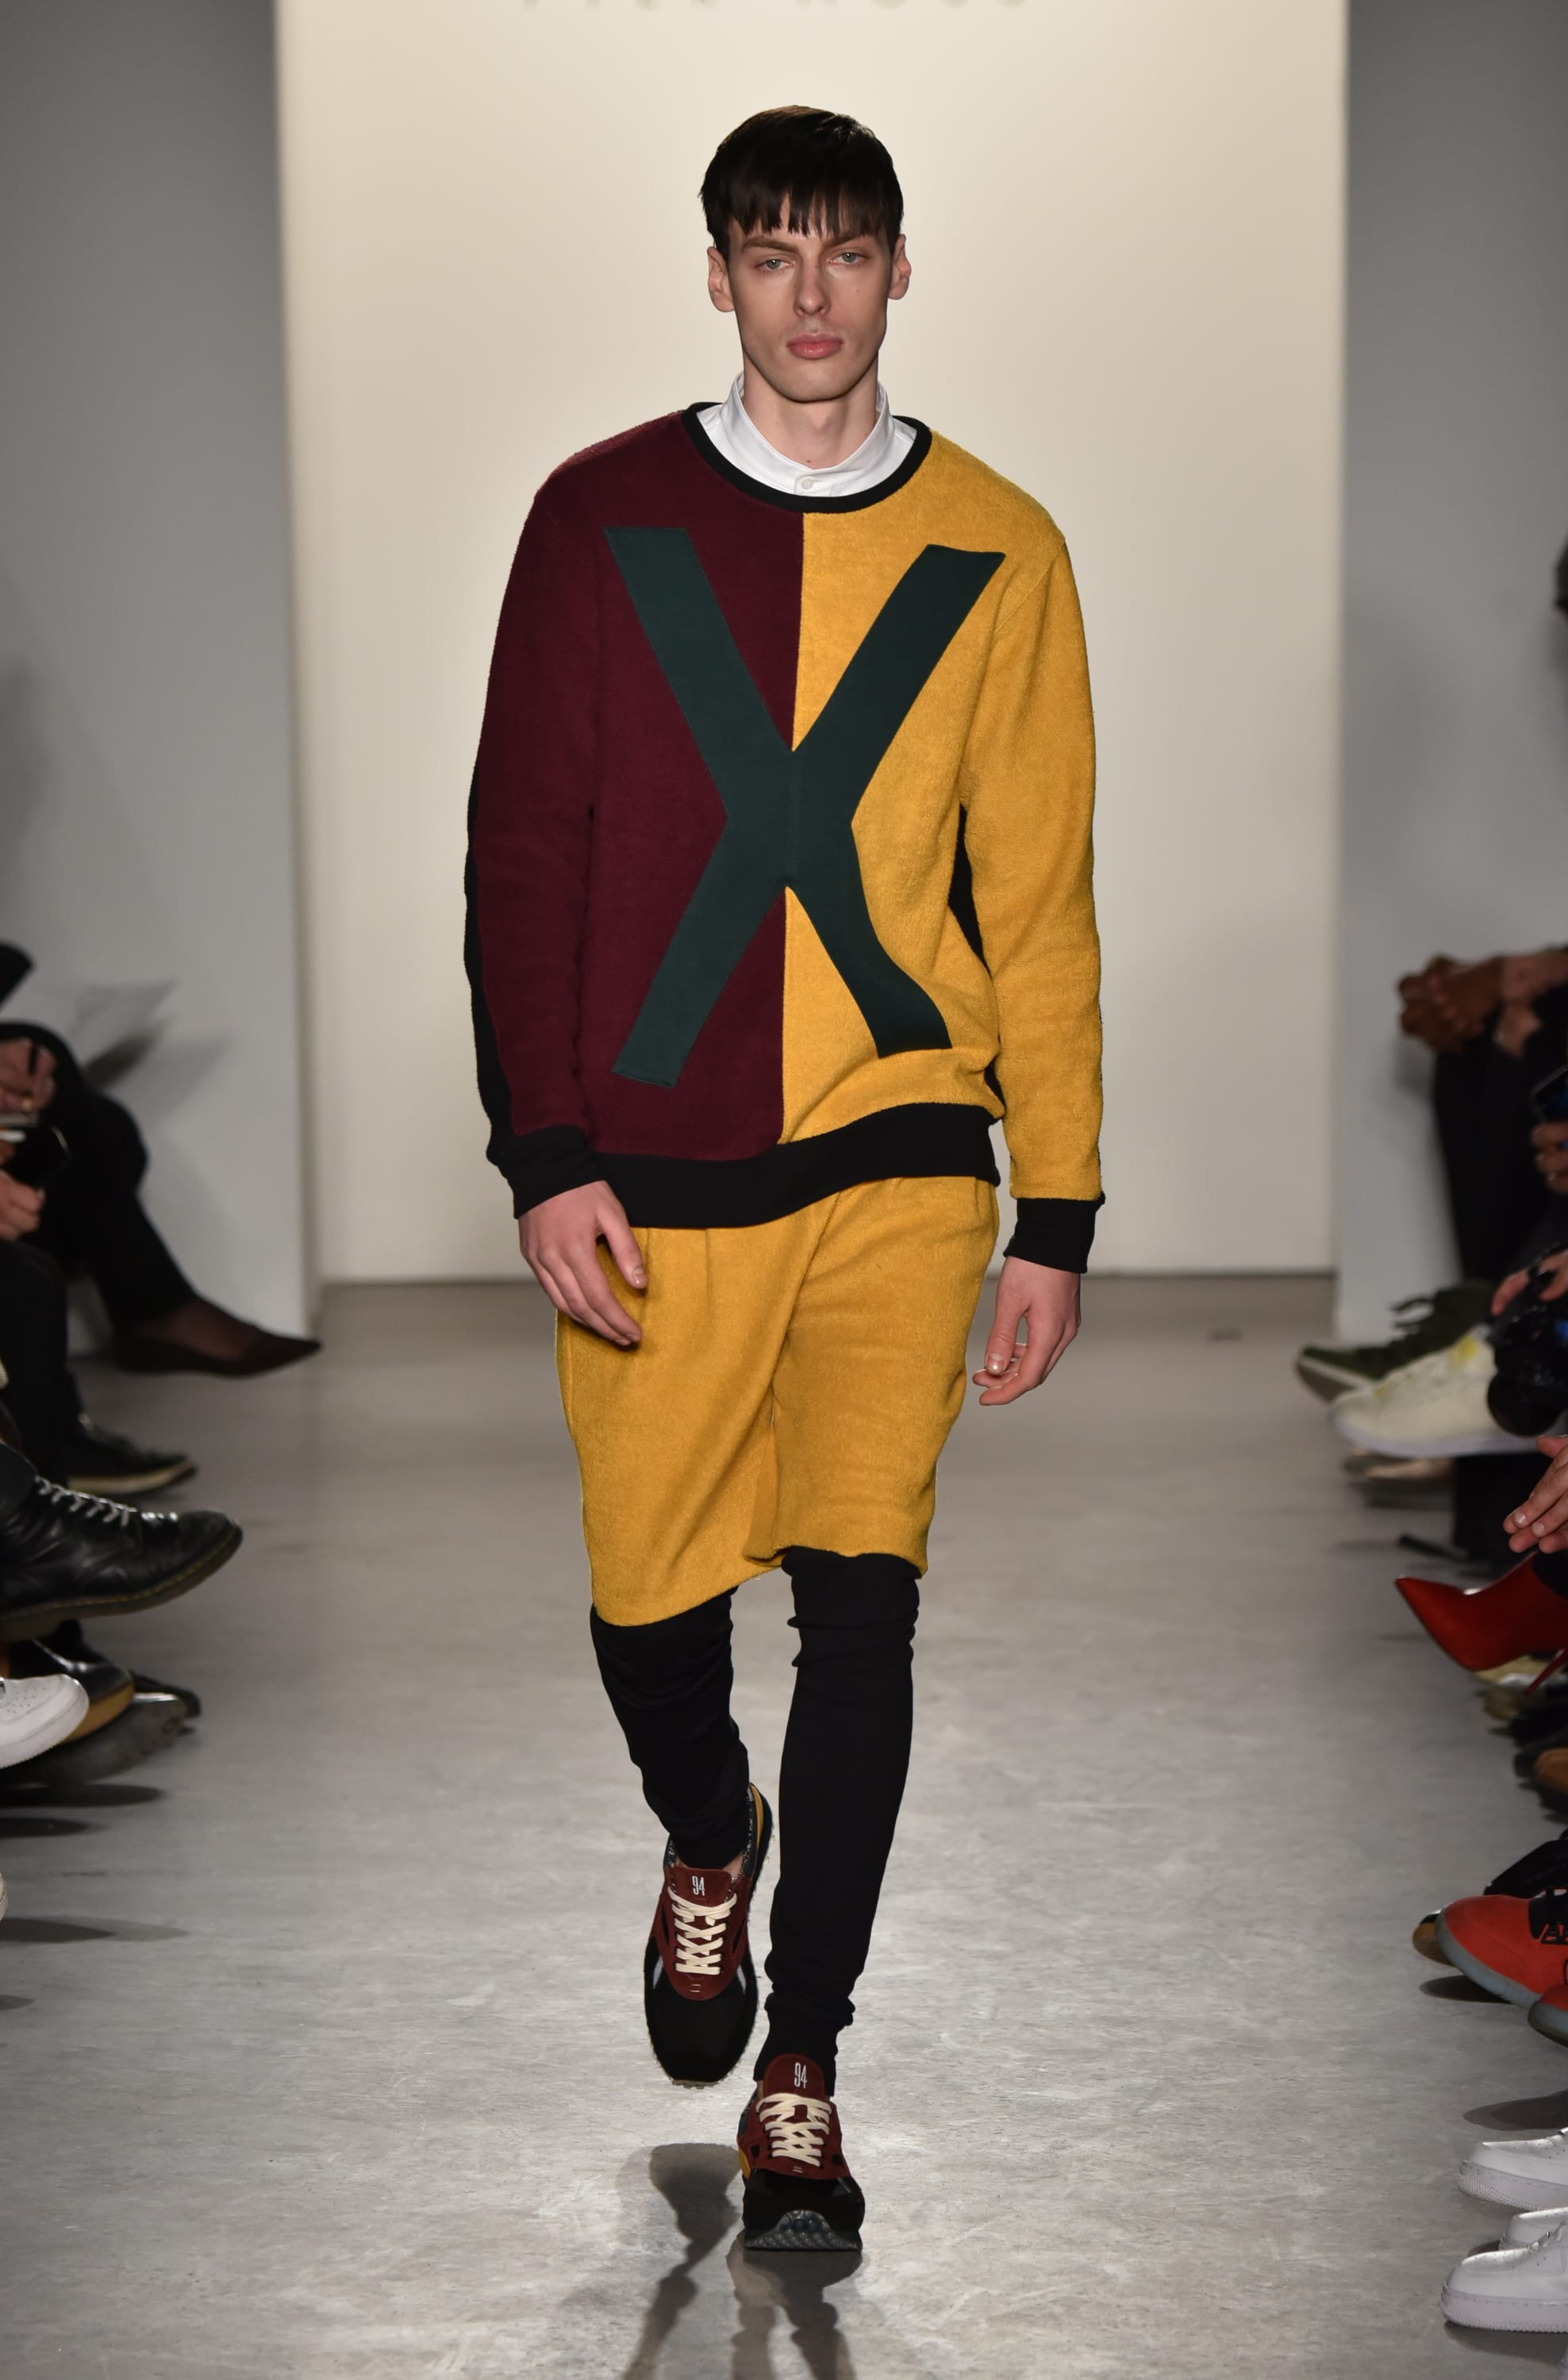 A look from Pyer Moss' Fall 2015 collection